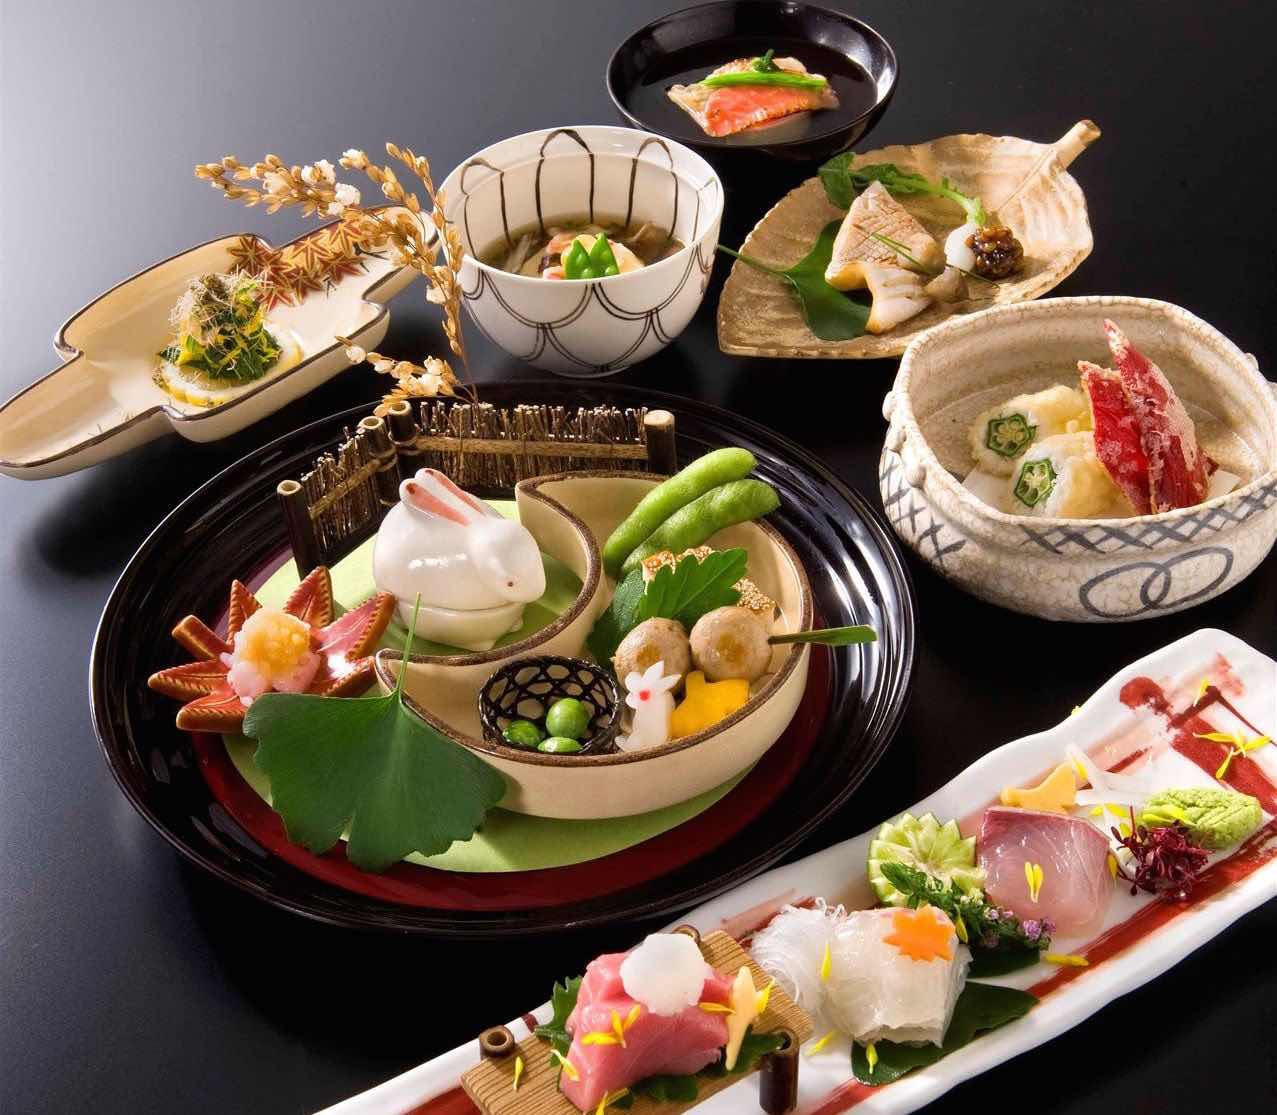 Muslim-friendly kaiseki dinner course